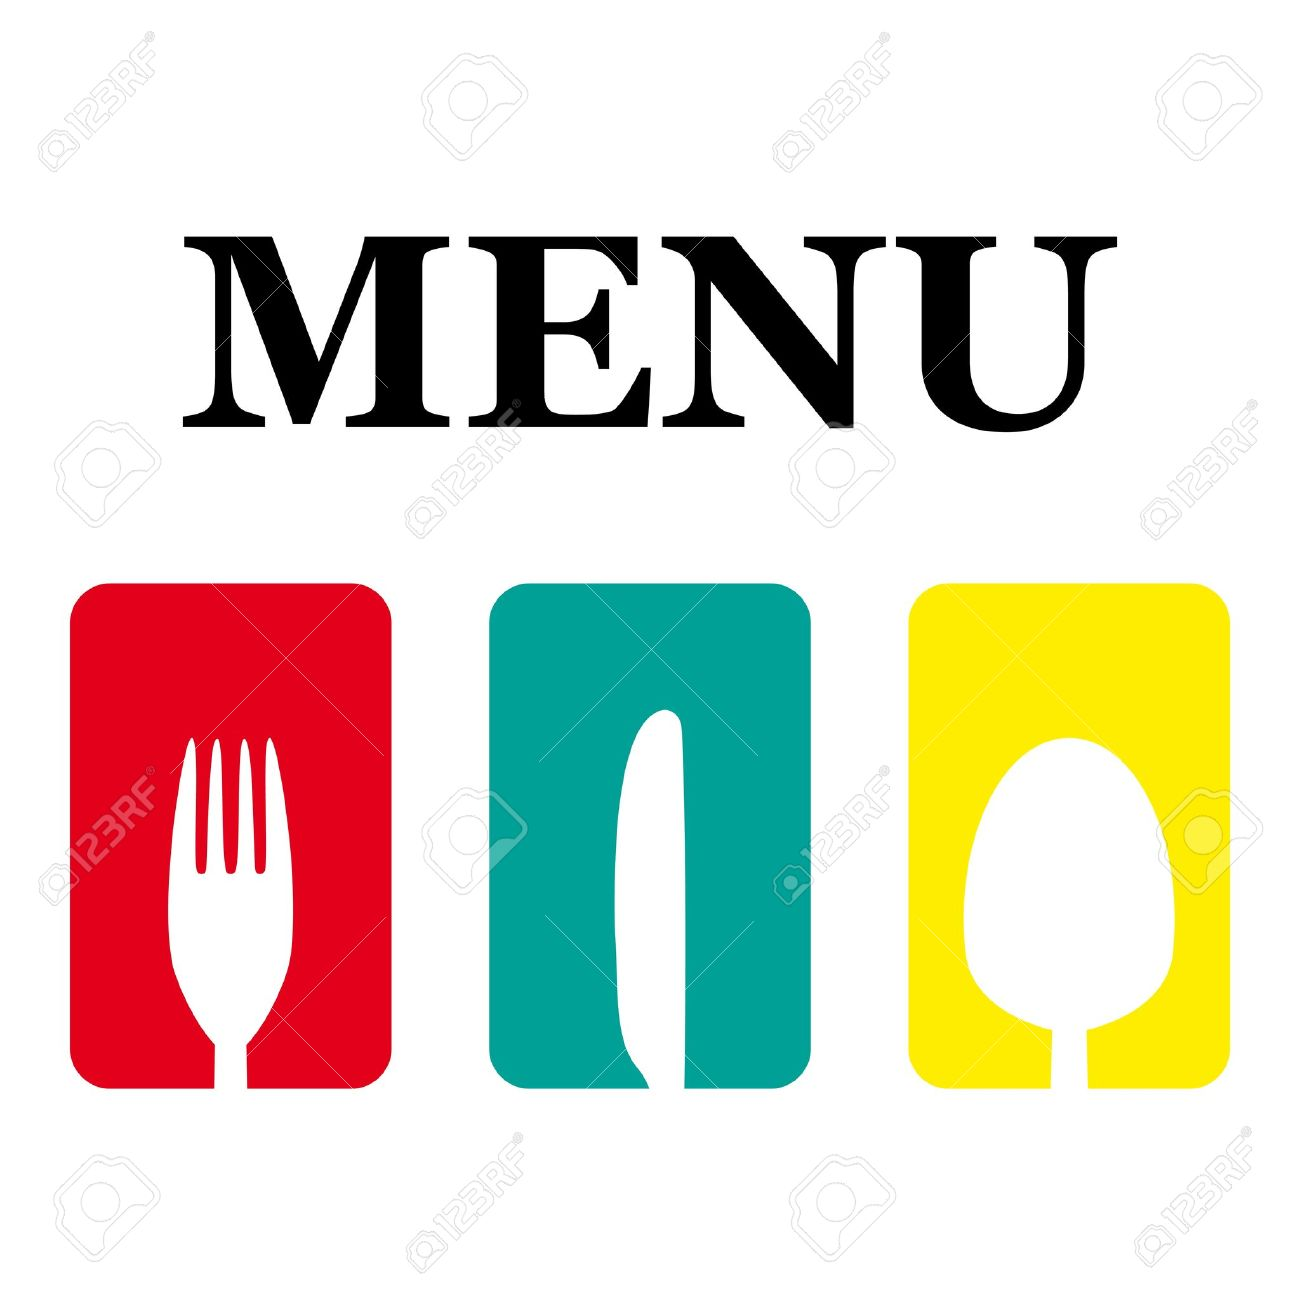 logo menu Stock Vector - 17883291